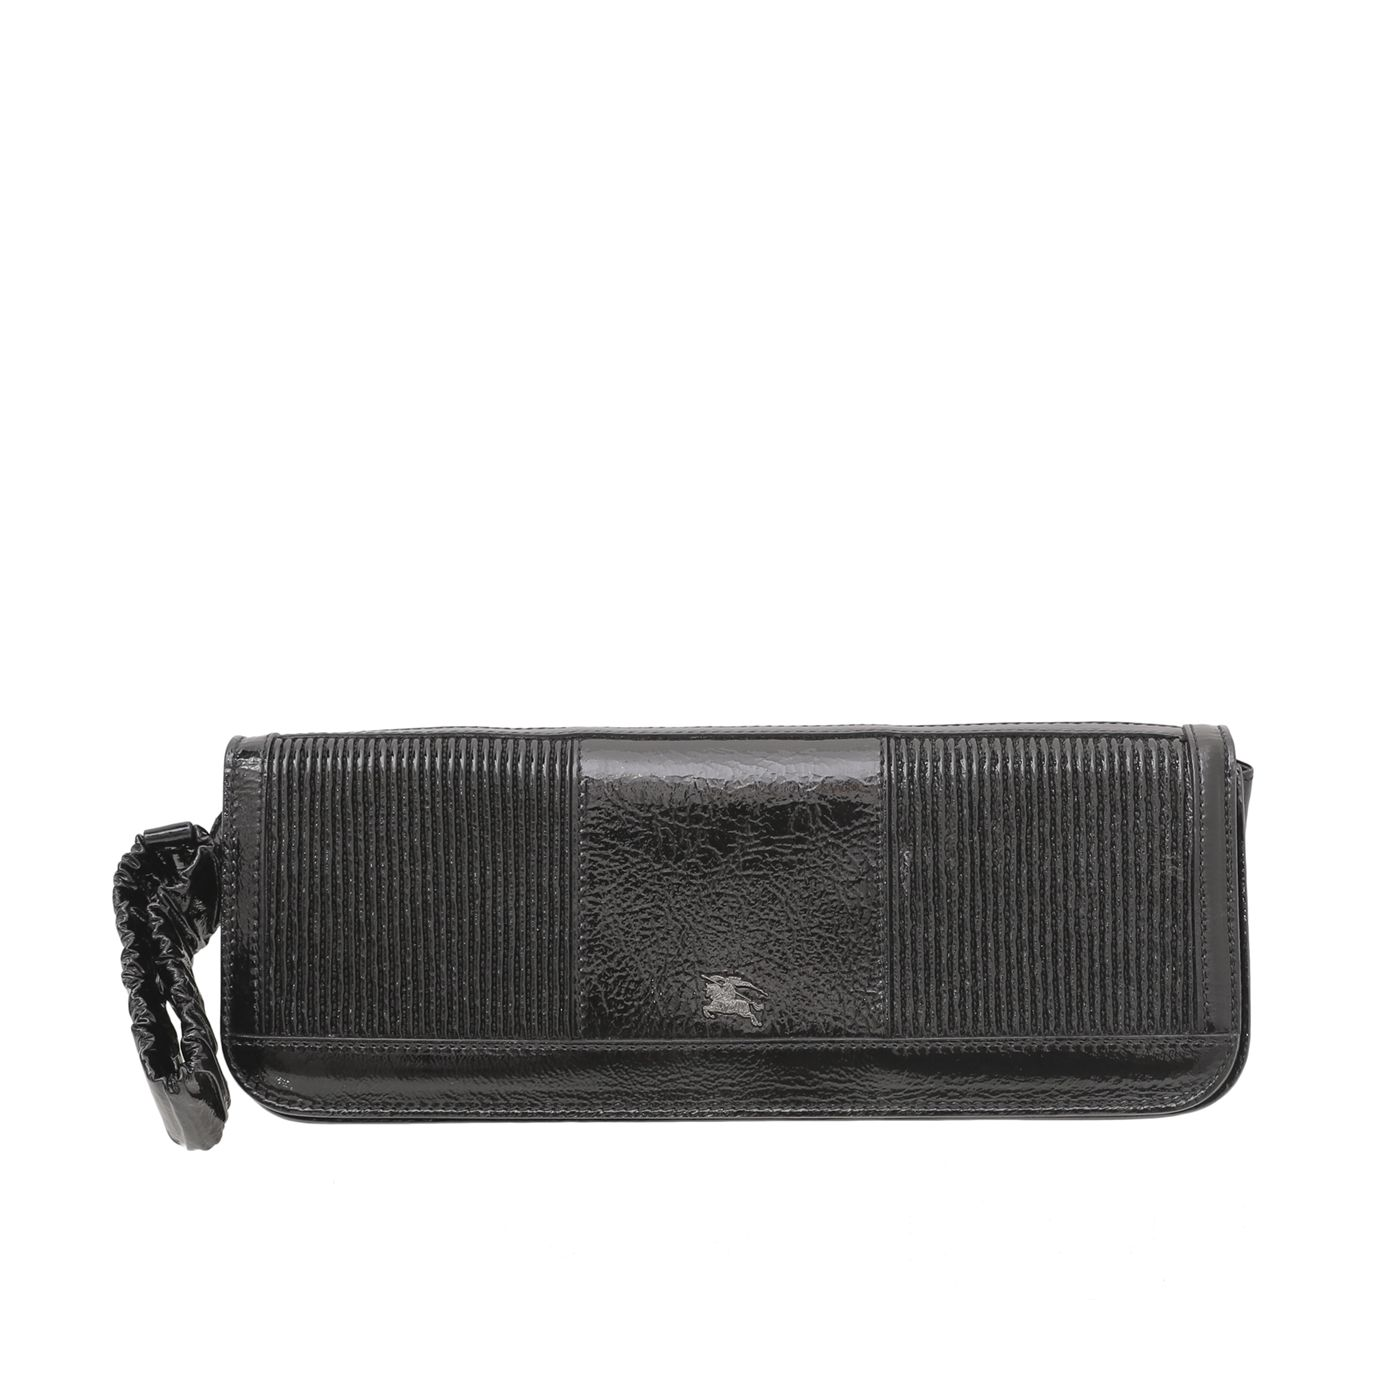 Burberry Black Willow Pleated Elastic Wristlet Clutch